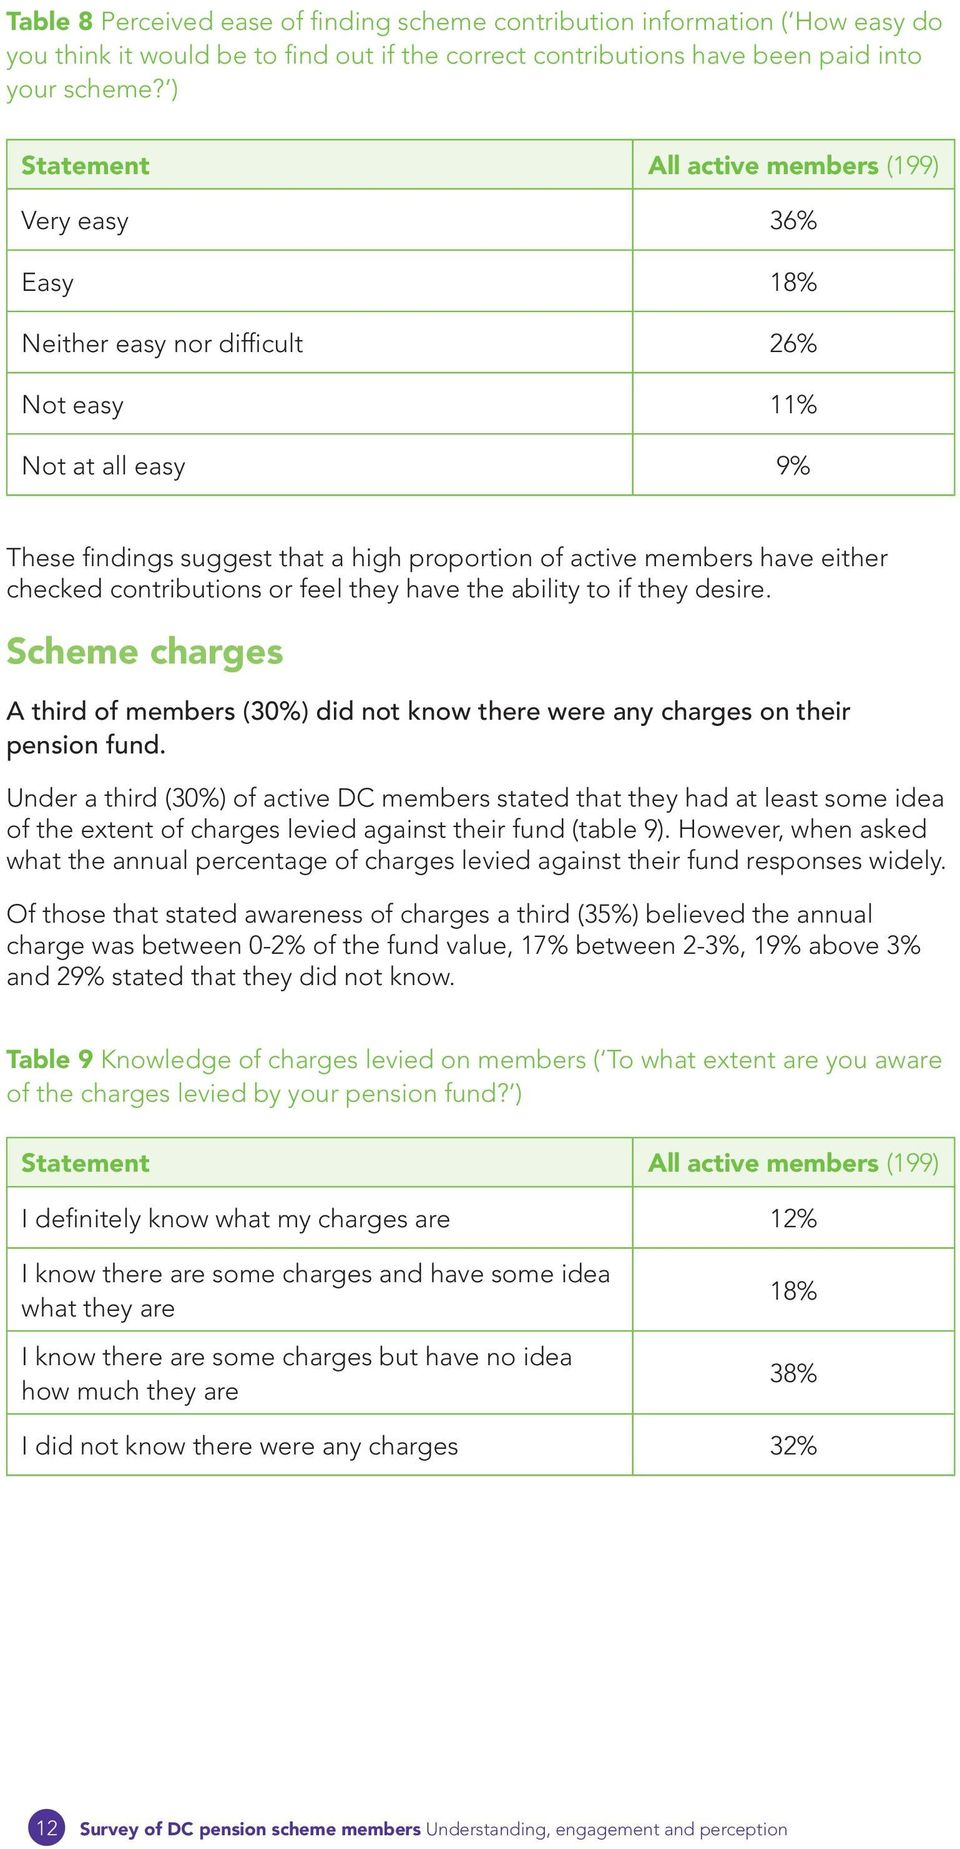 checked contributions or feel they have the ability to if they desire. Scheme charges A third of members (30%) did not know there were any charges on their pension fund.